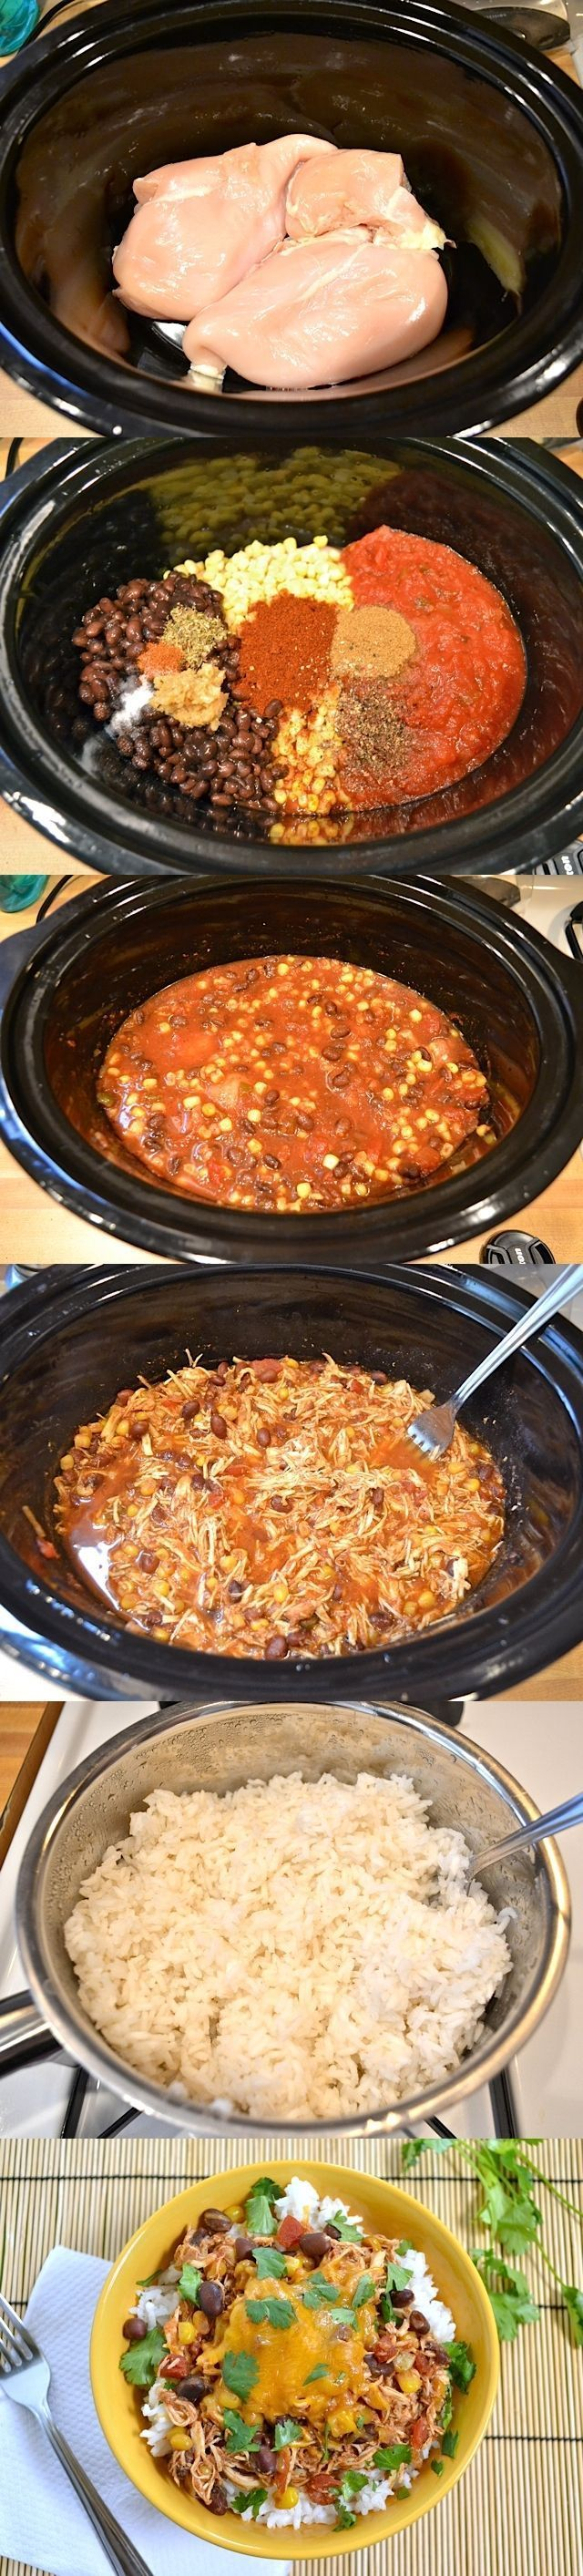 Slow Cooker Taco Chicken Bowls are the ultimate set it and forget it easy weeknight meal that the whole family will love. Step by step photos.